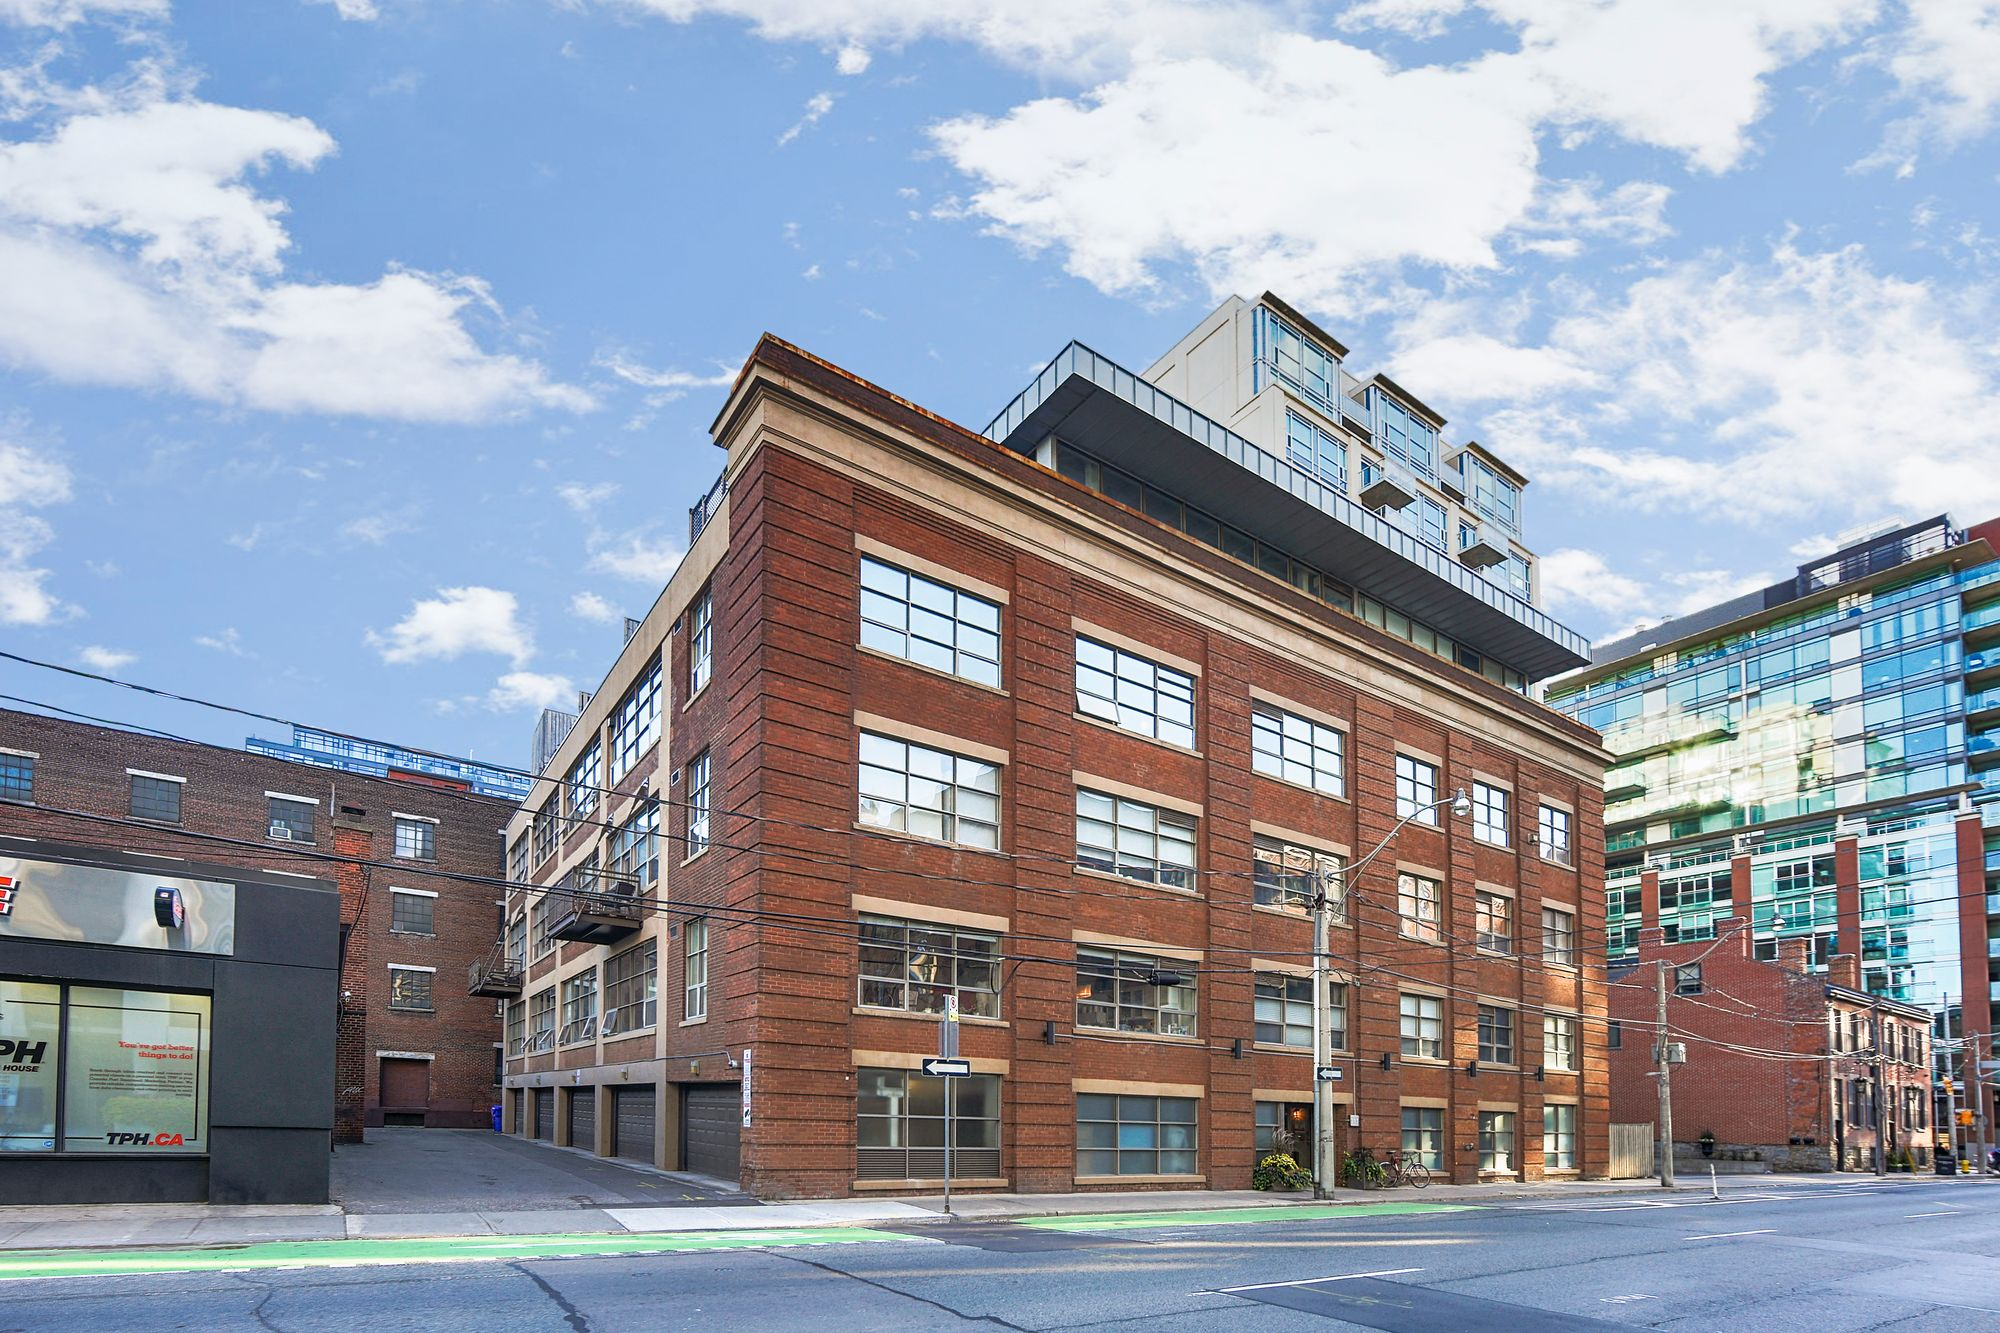 383 Adelaide St E. This loft at Liberty Lofts is located in  Downtown, Toronto - image #1 of 4 by Strata.ca